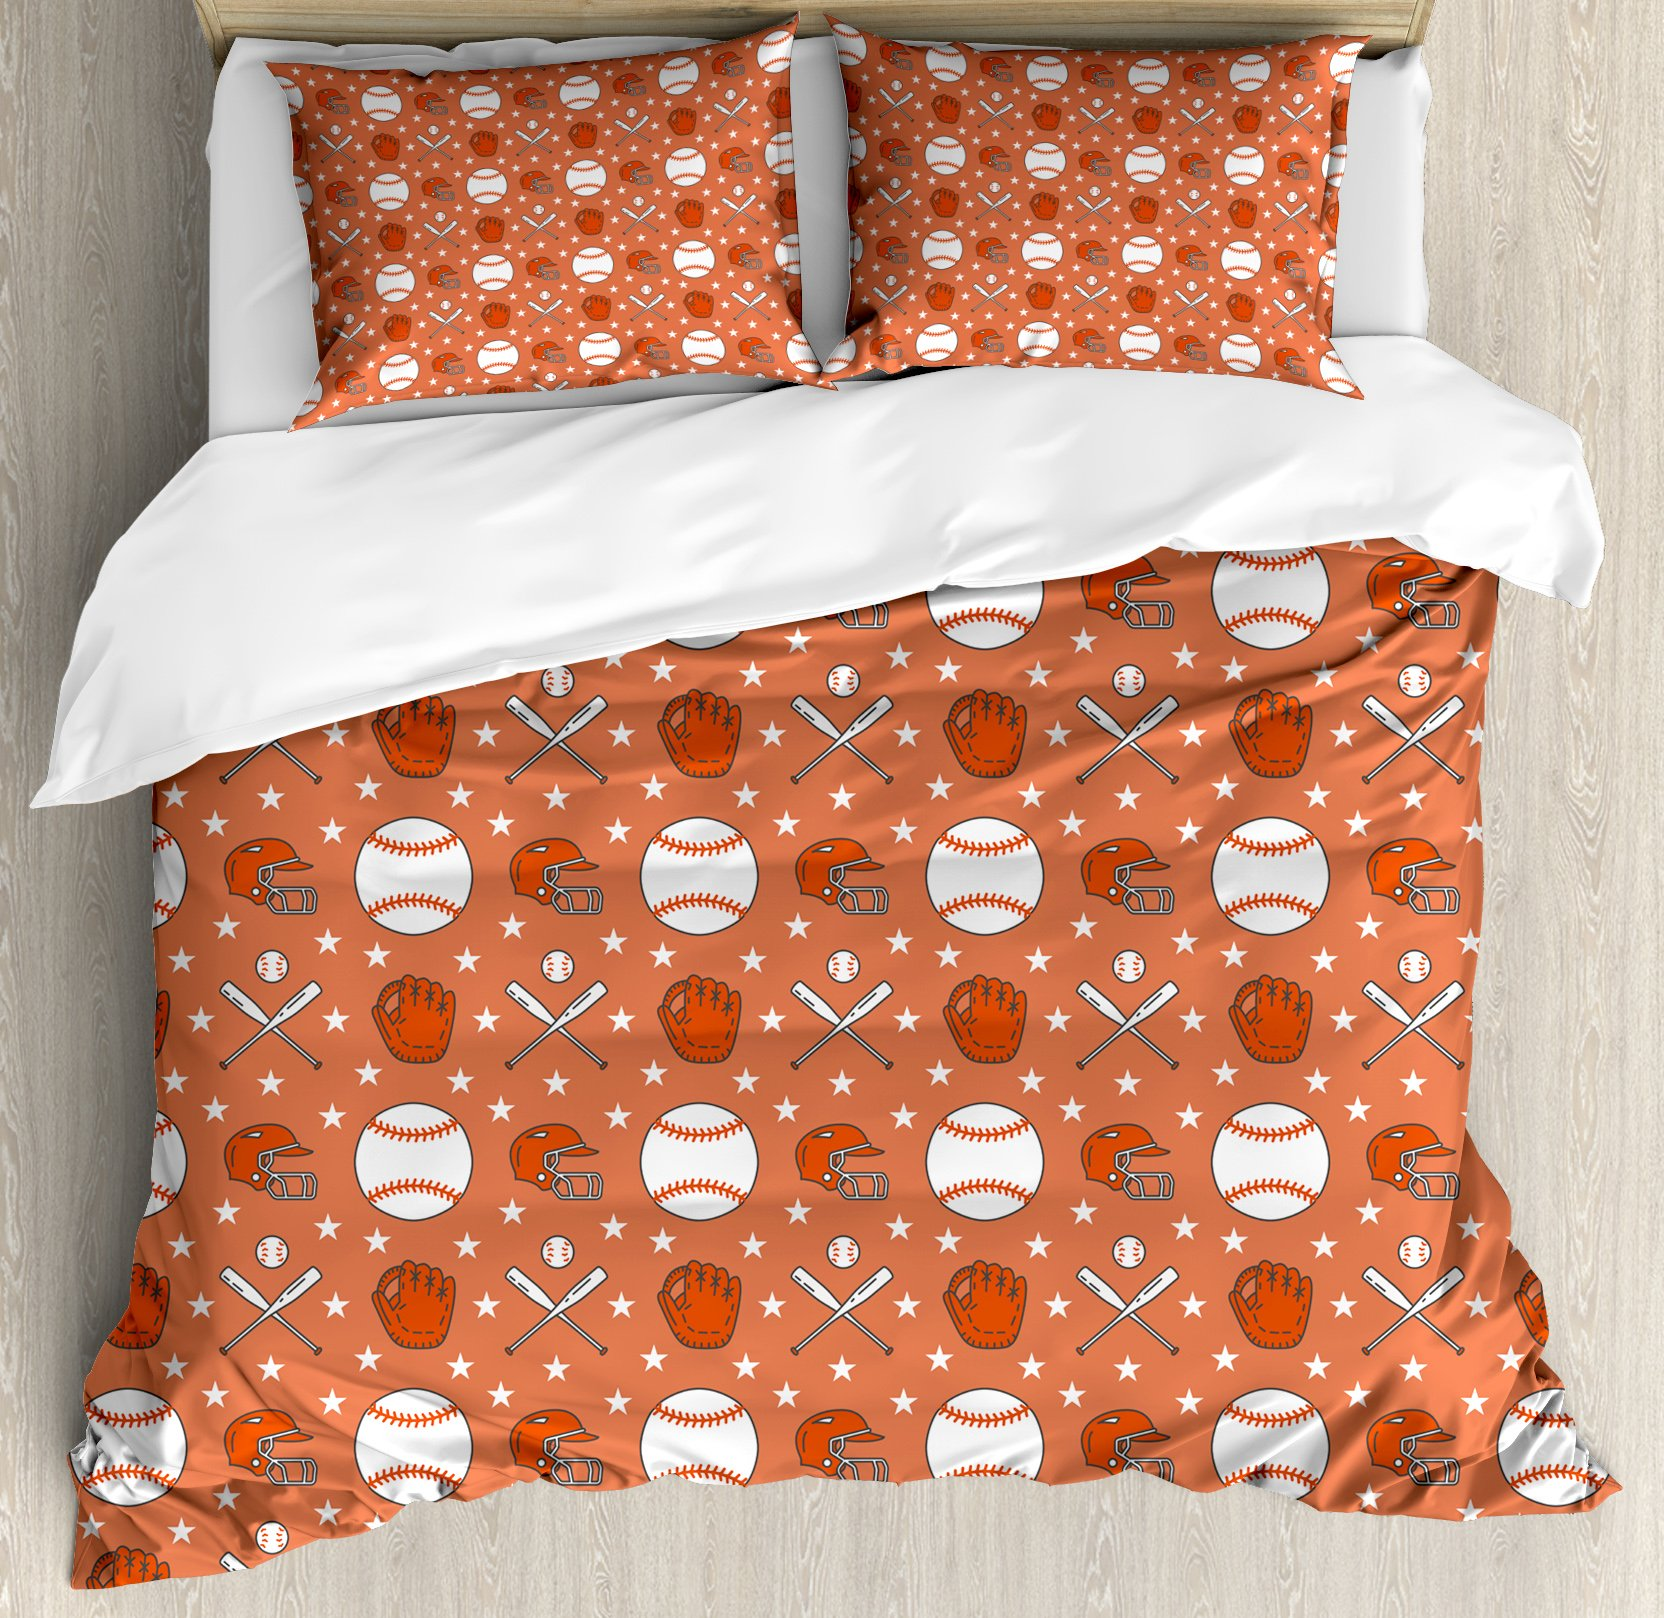 Baseball Duvet Cover Set Queen Size by Lunarable, Softball Sport Game with Icons of Balls Gloves Bats Helmets Professional Player, Decorative 3 Piece Bedding Set with 2 Pillow Shams, Orange White